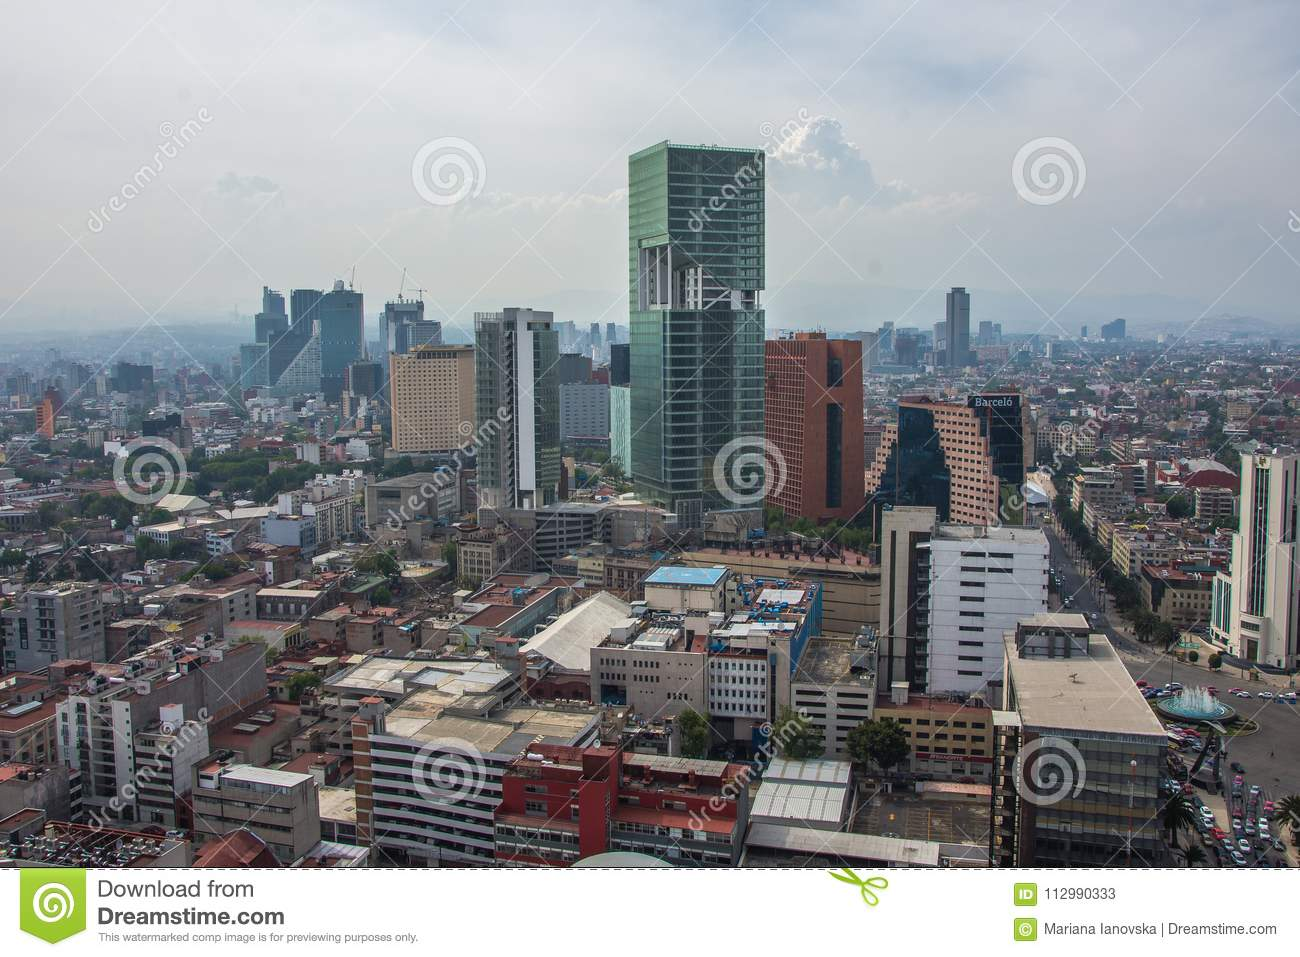 Skyline in Mexico City, aerial view of the city